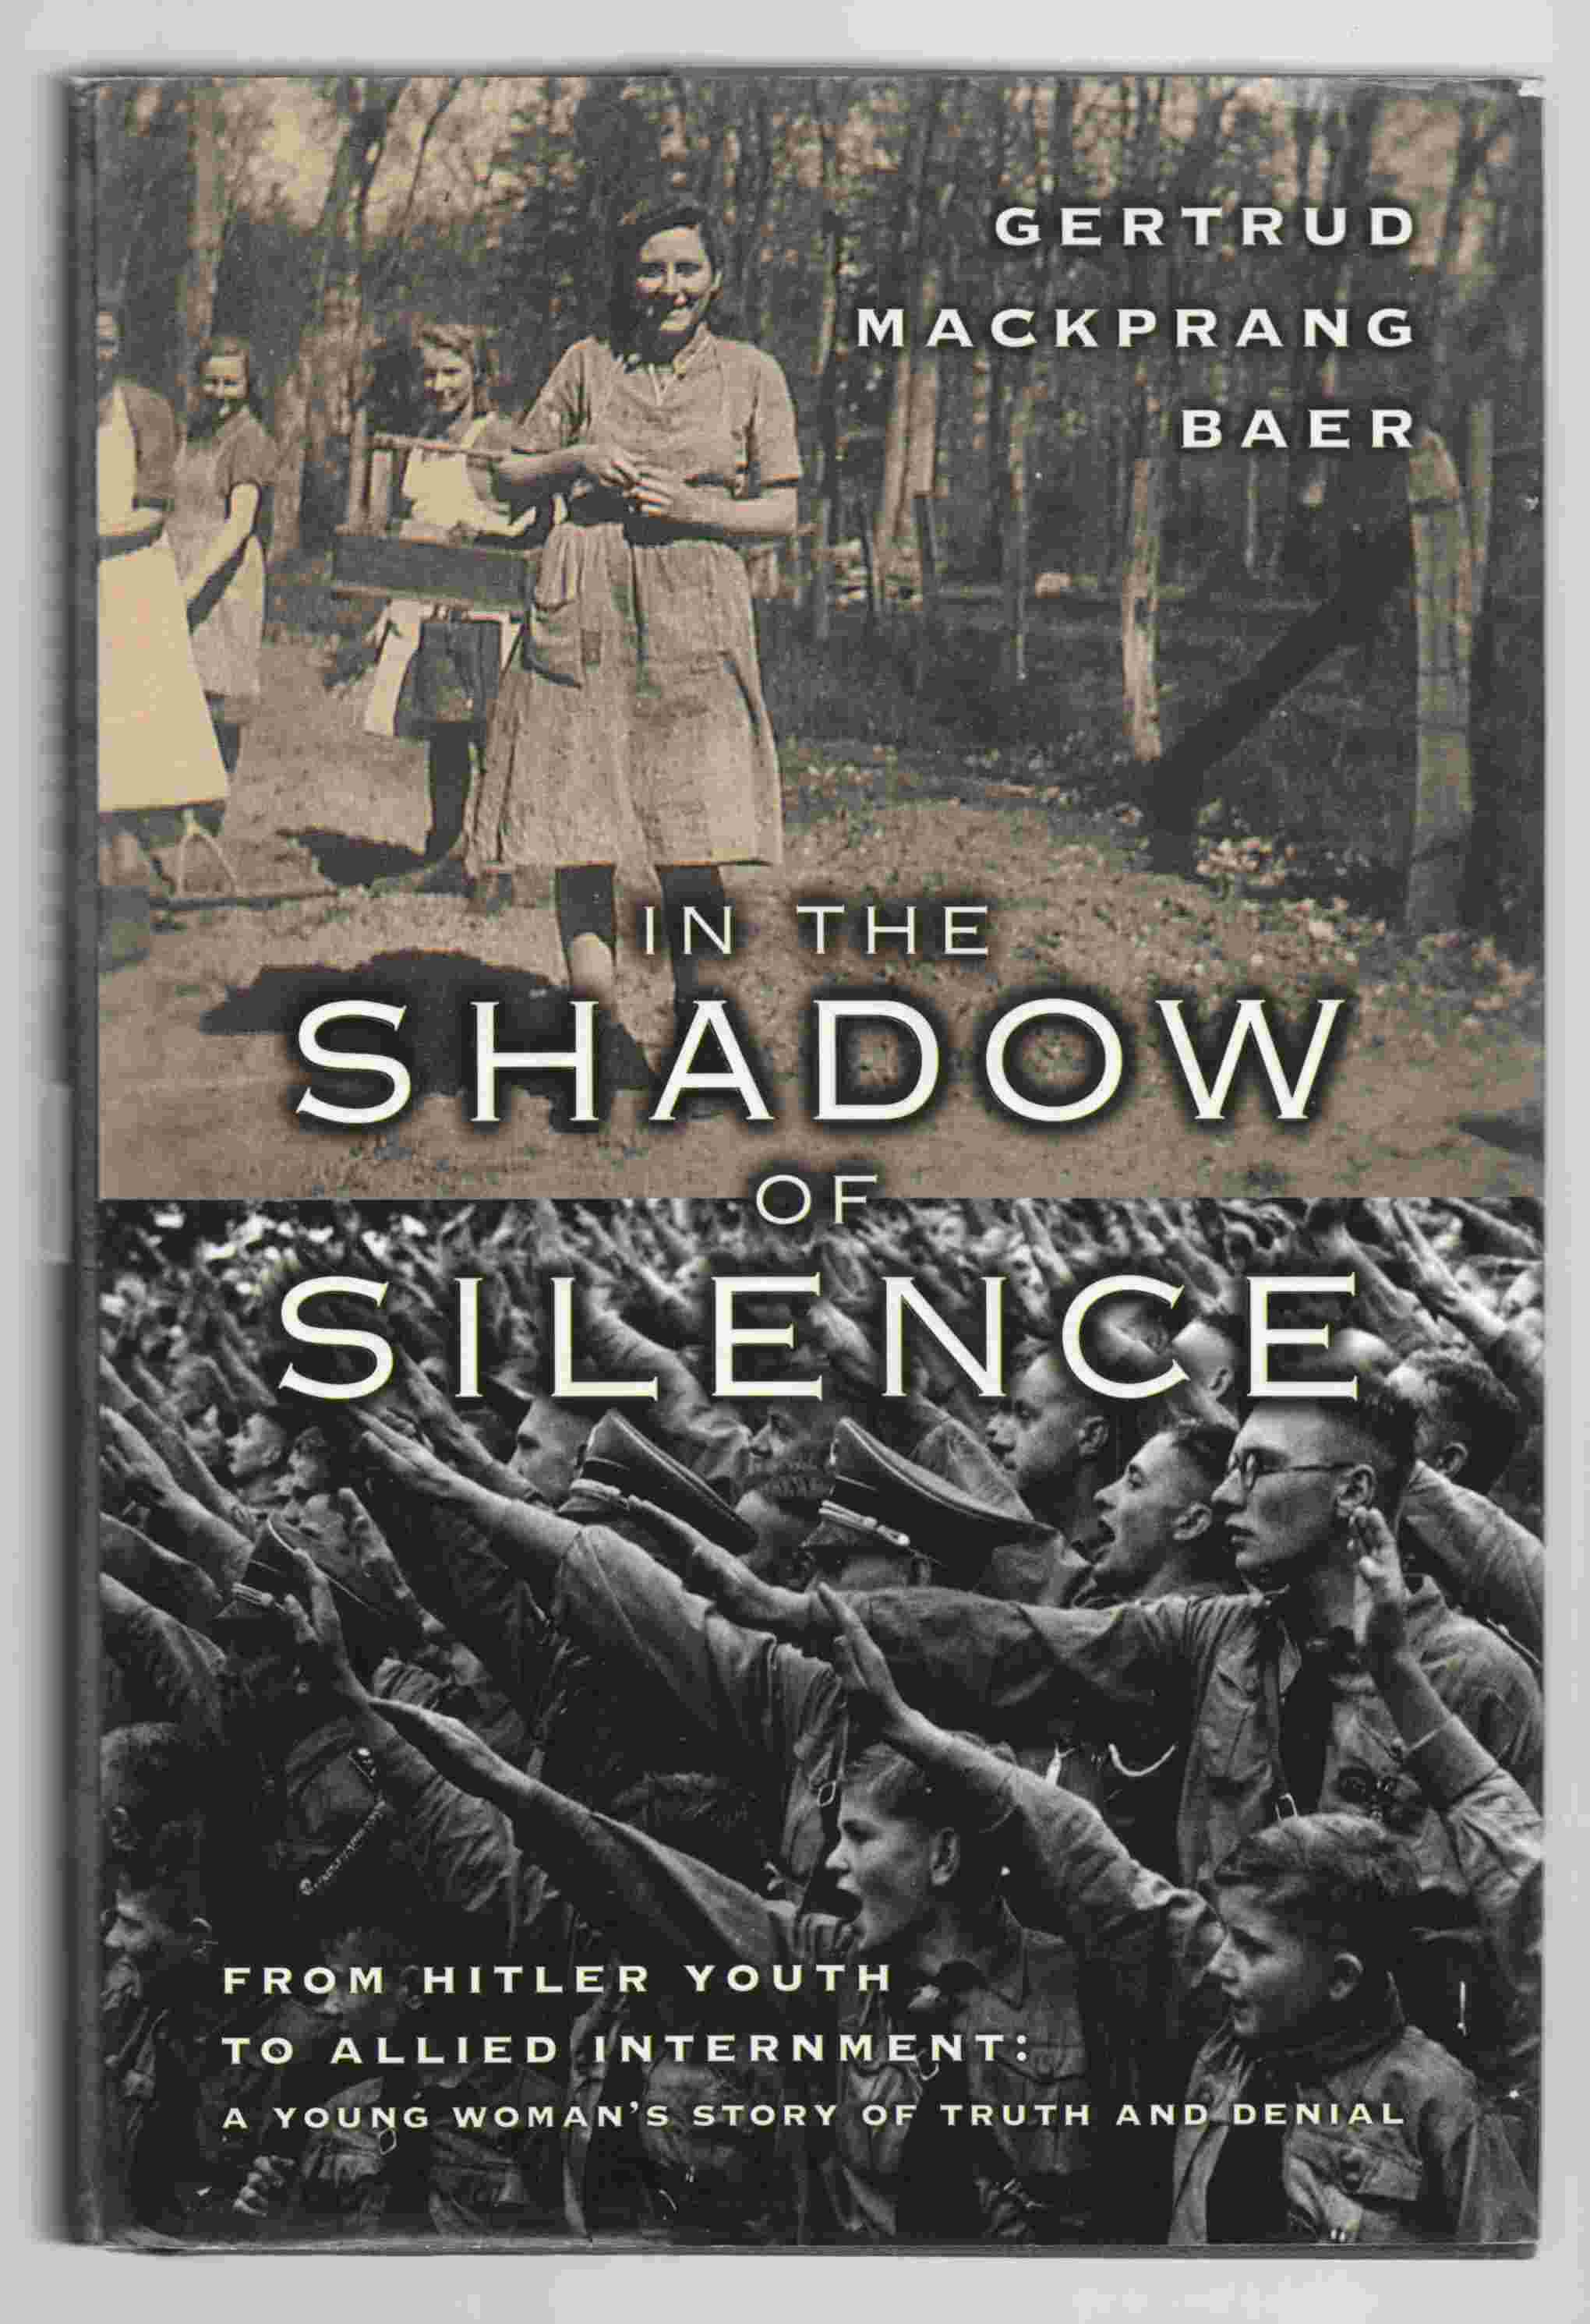 Image for In the Shadow of Silence From Hitler Youth to Allied Internment: a Young Woman's Story of Truth and Denial